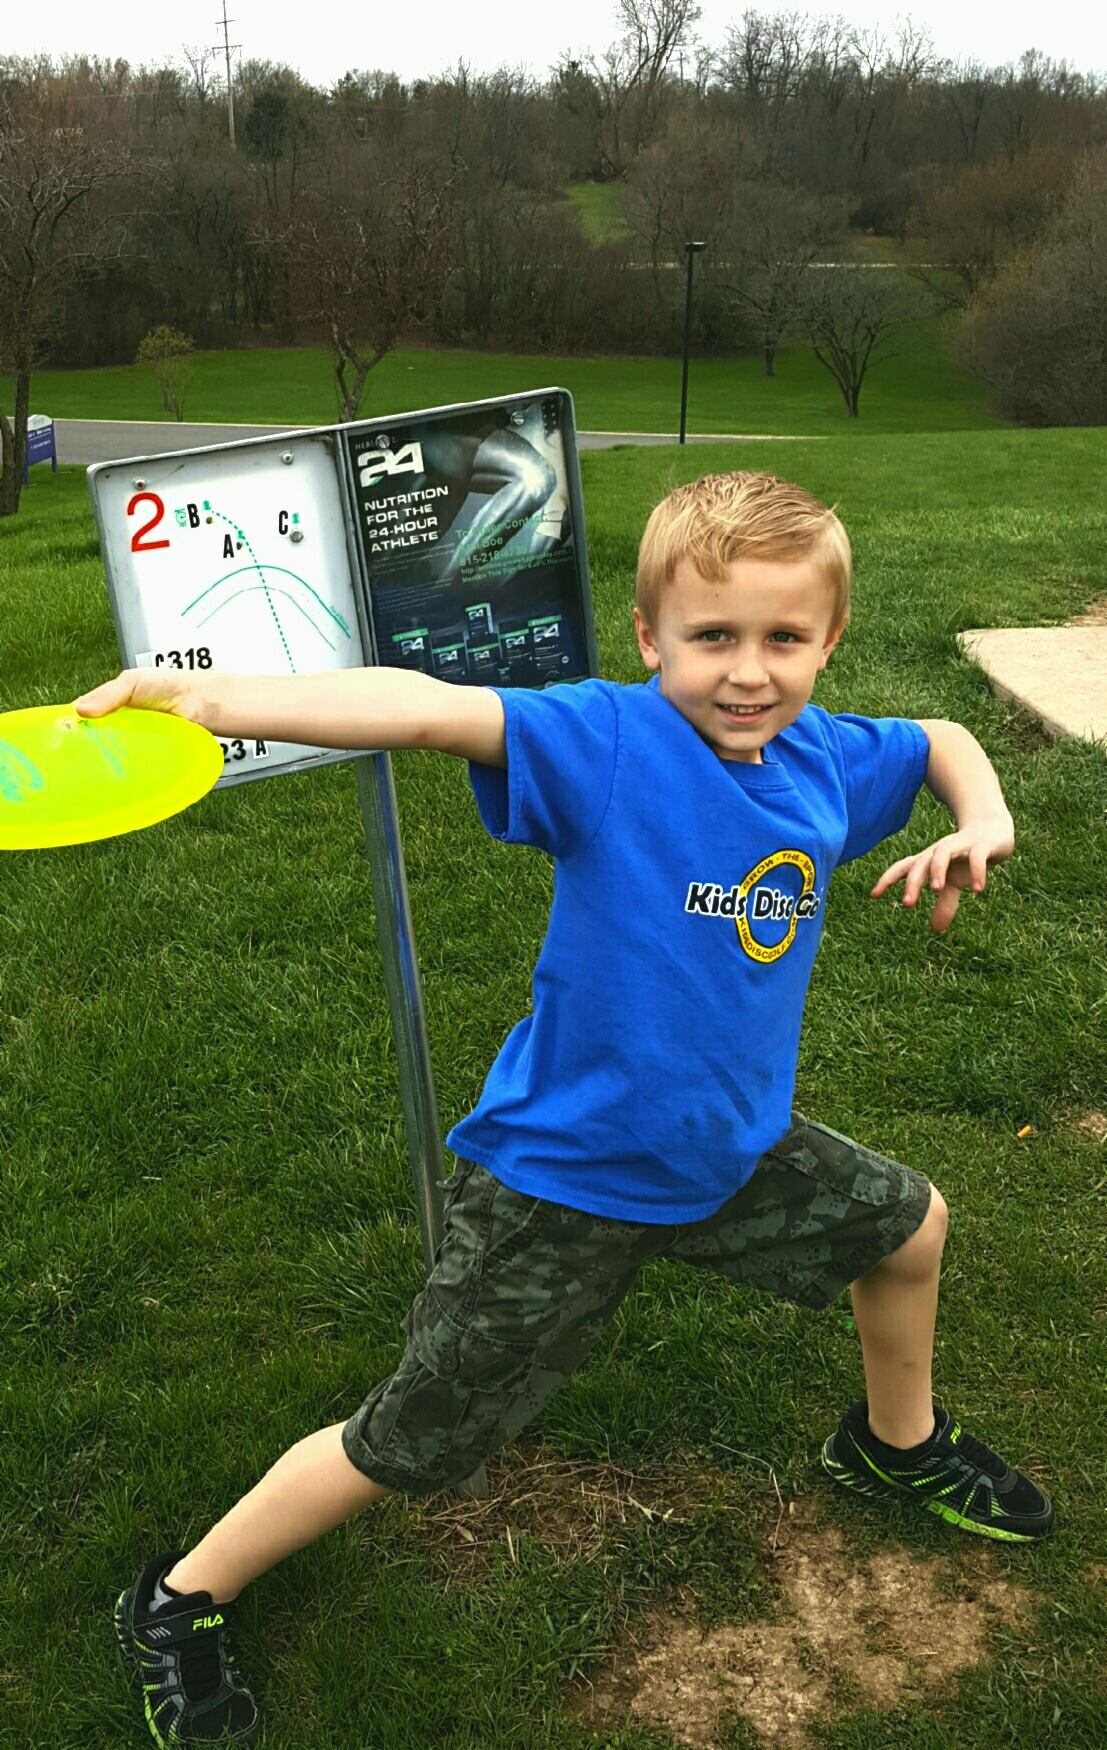 Parker wearing the shirt we sent him! He's now 6 years old and enjoying the sport once again!